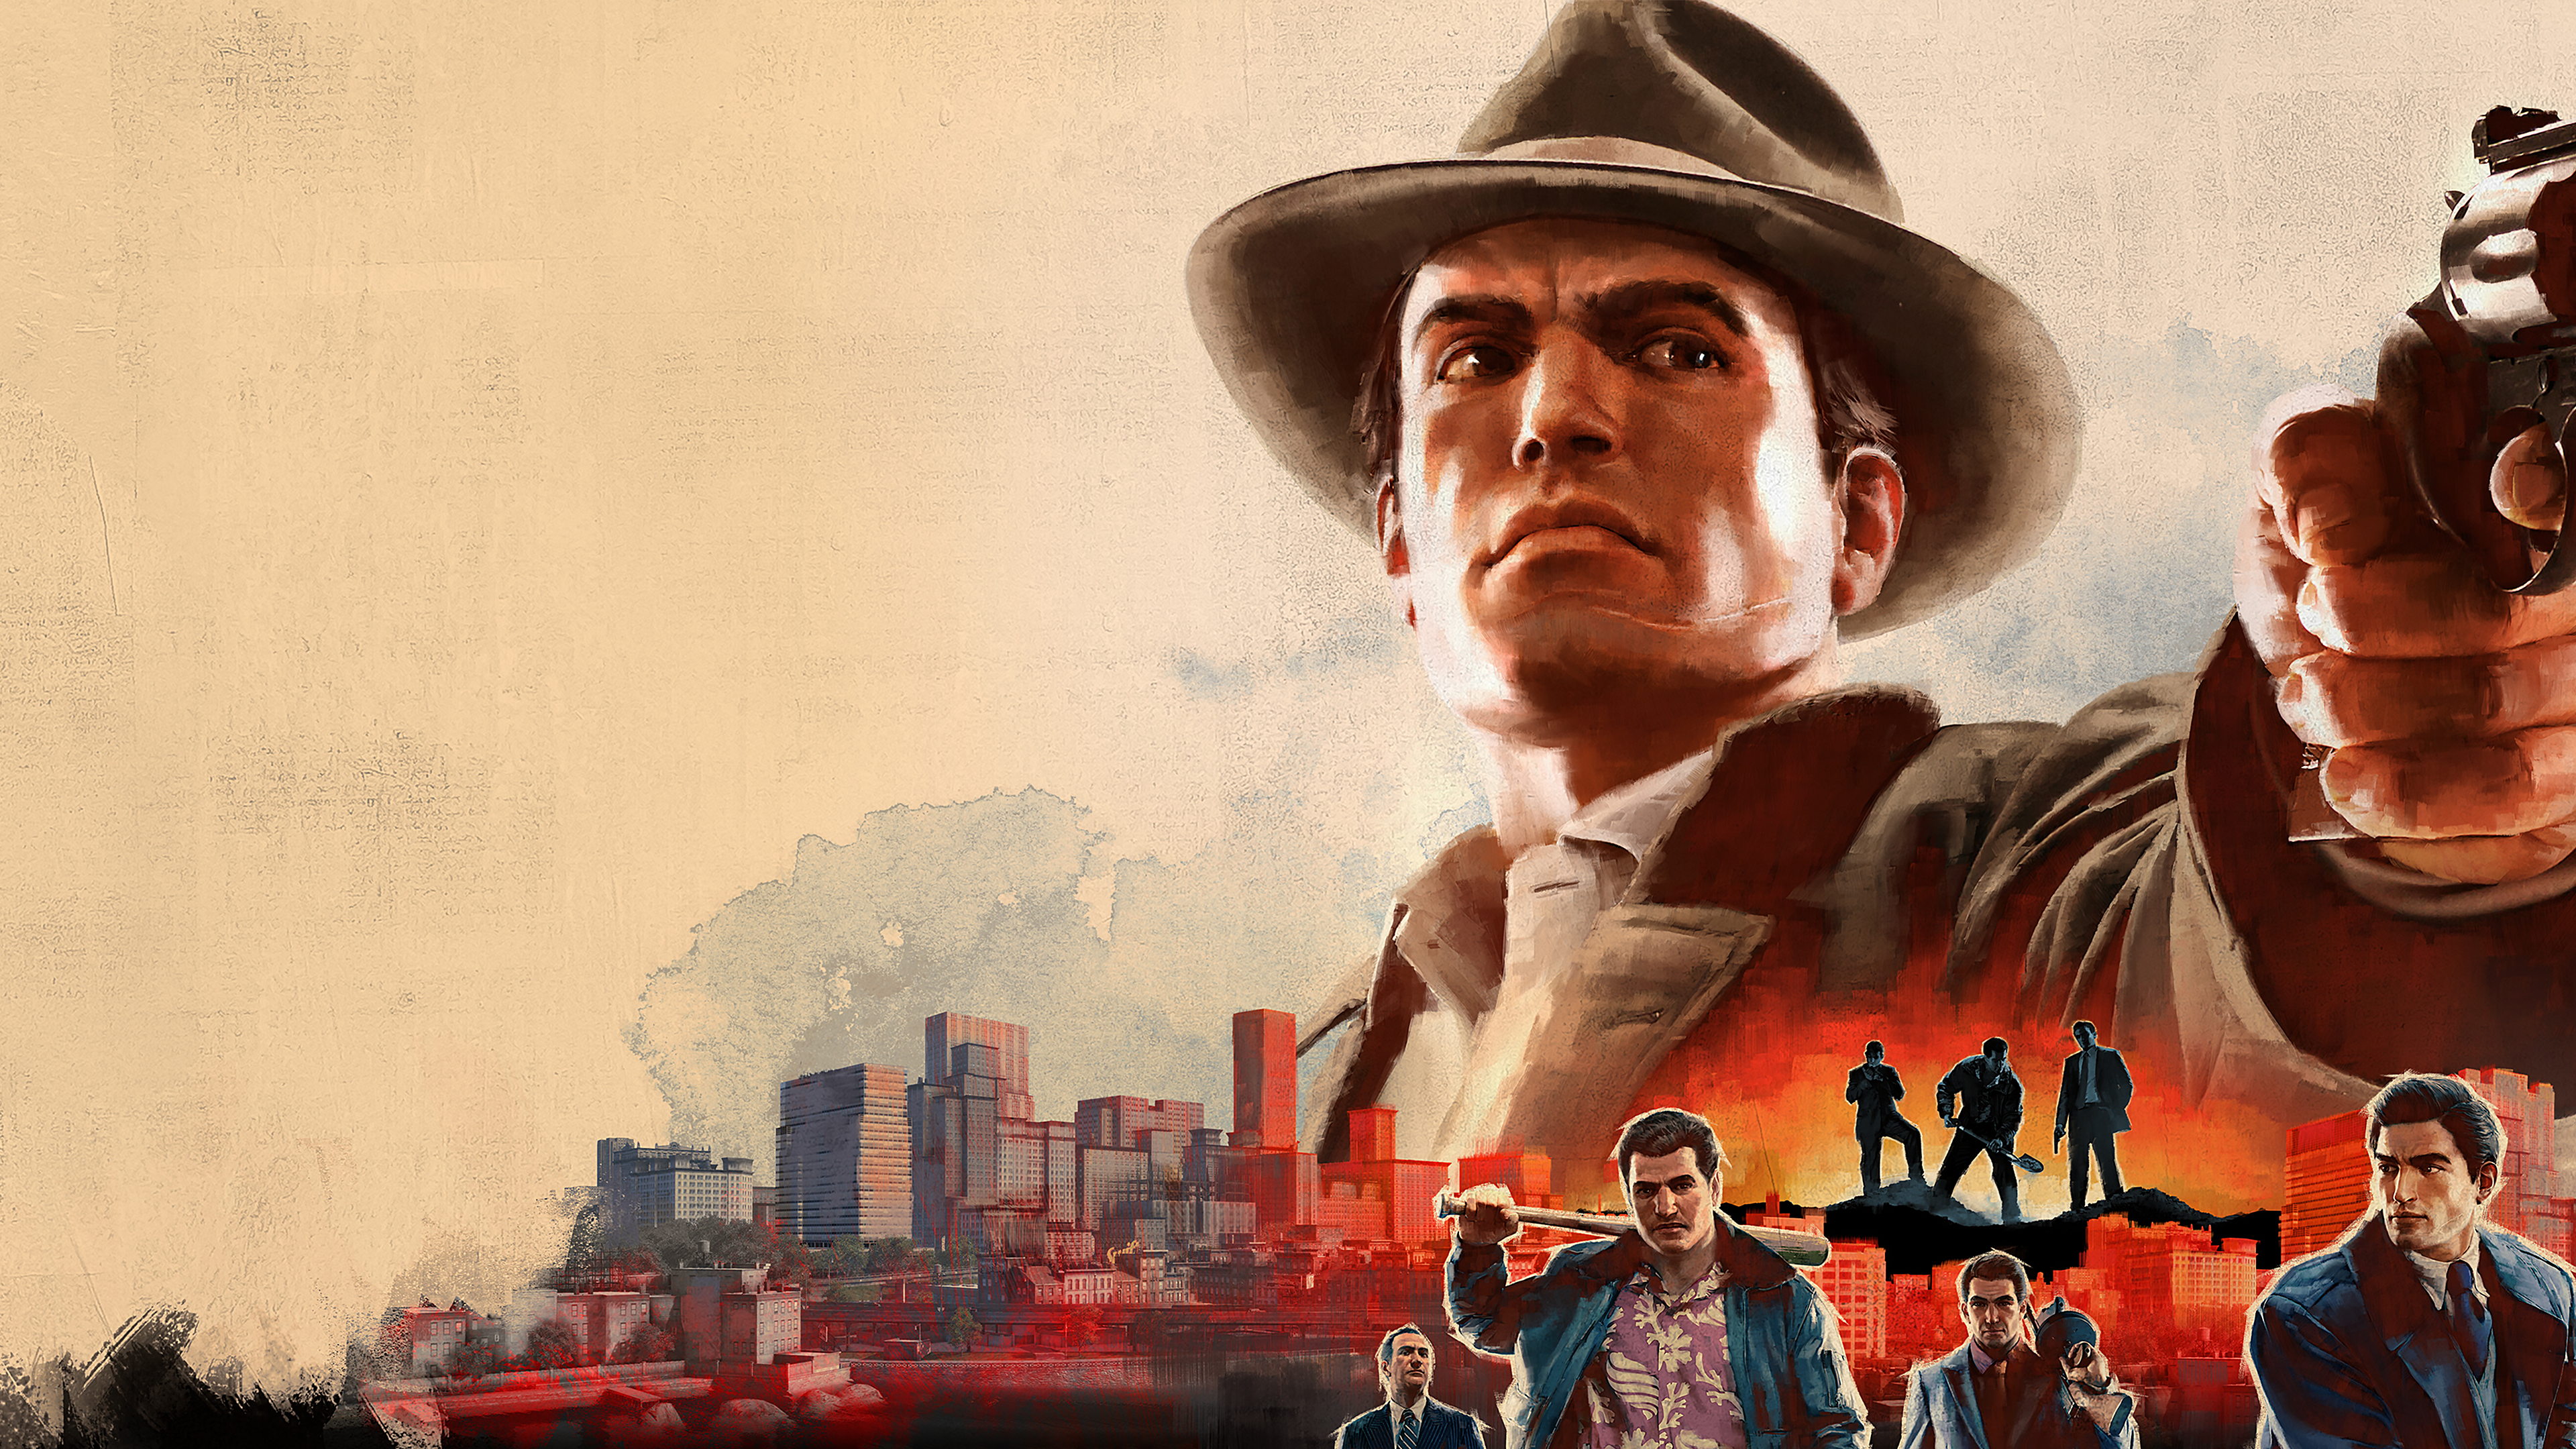 Mafia II: Definitive Edition (English/Chinese/Korean/Japanese Ver.)